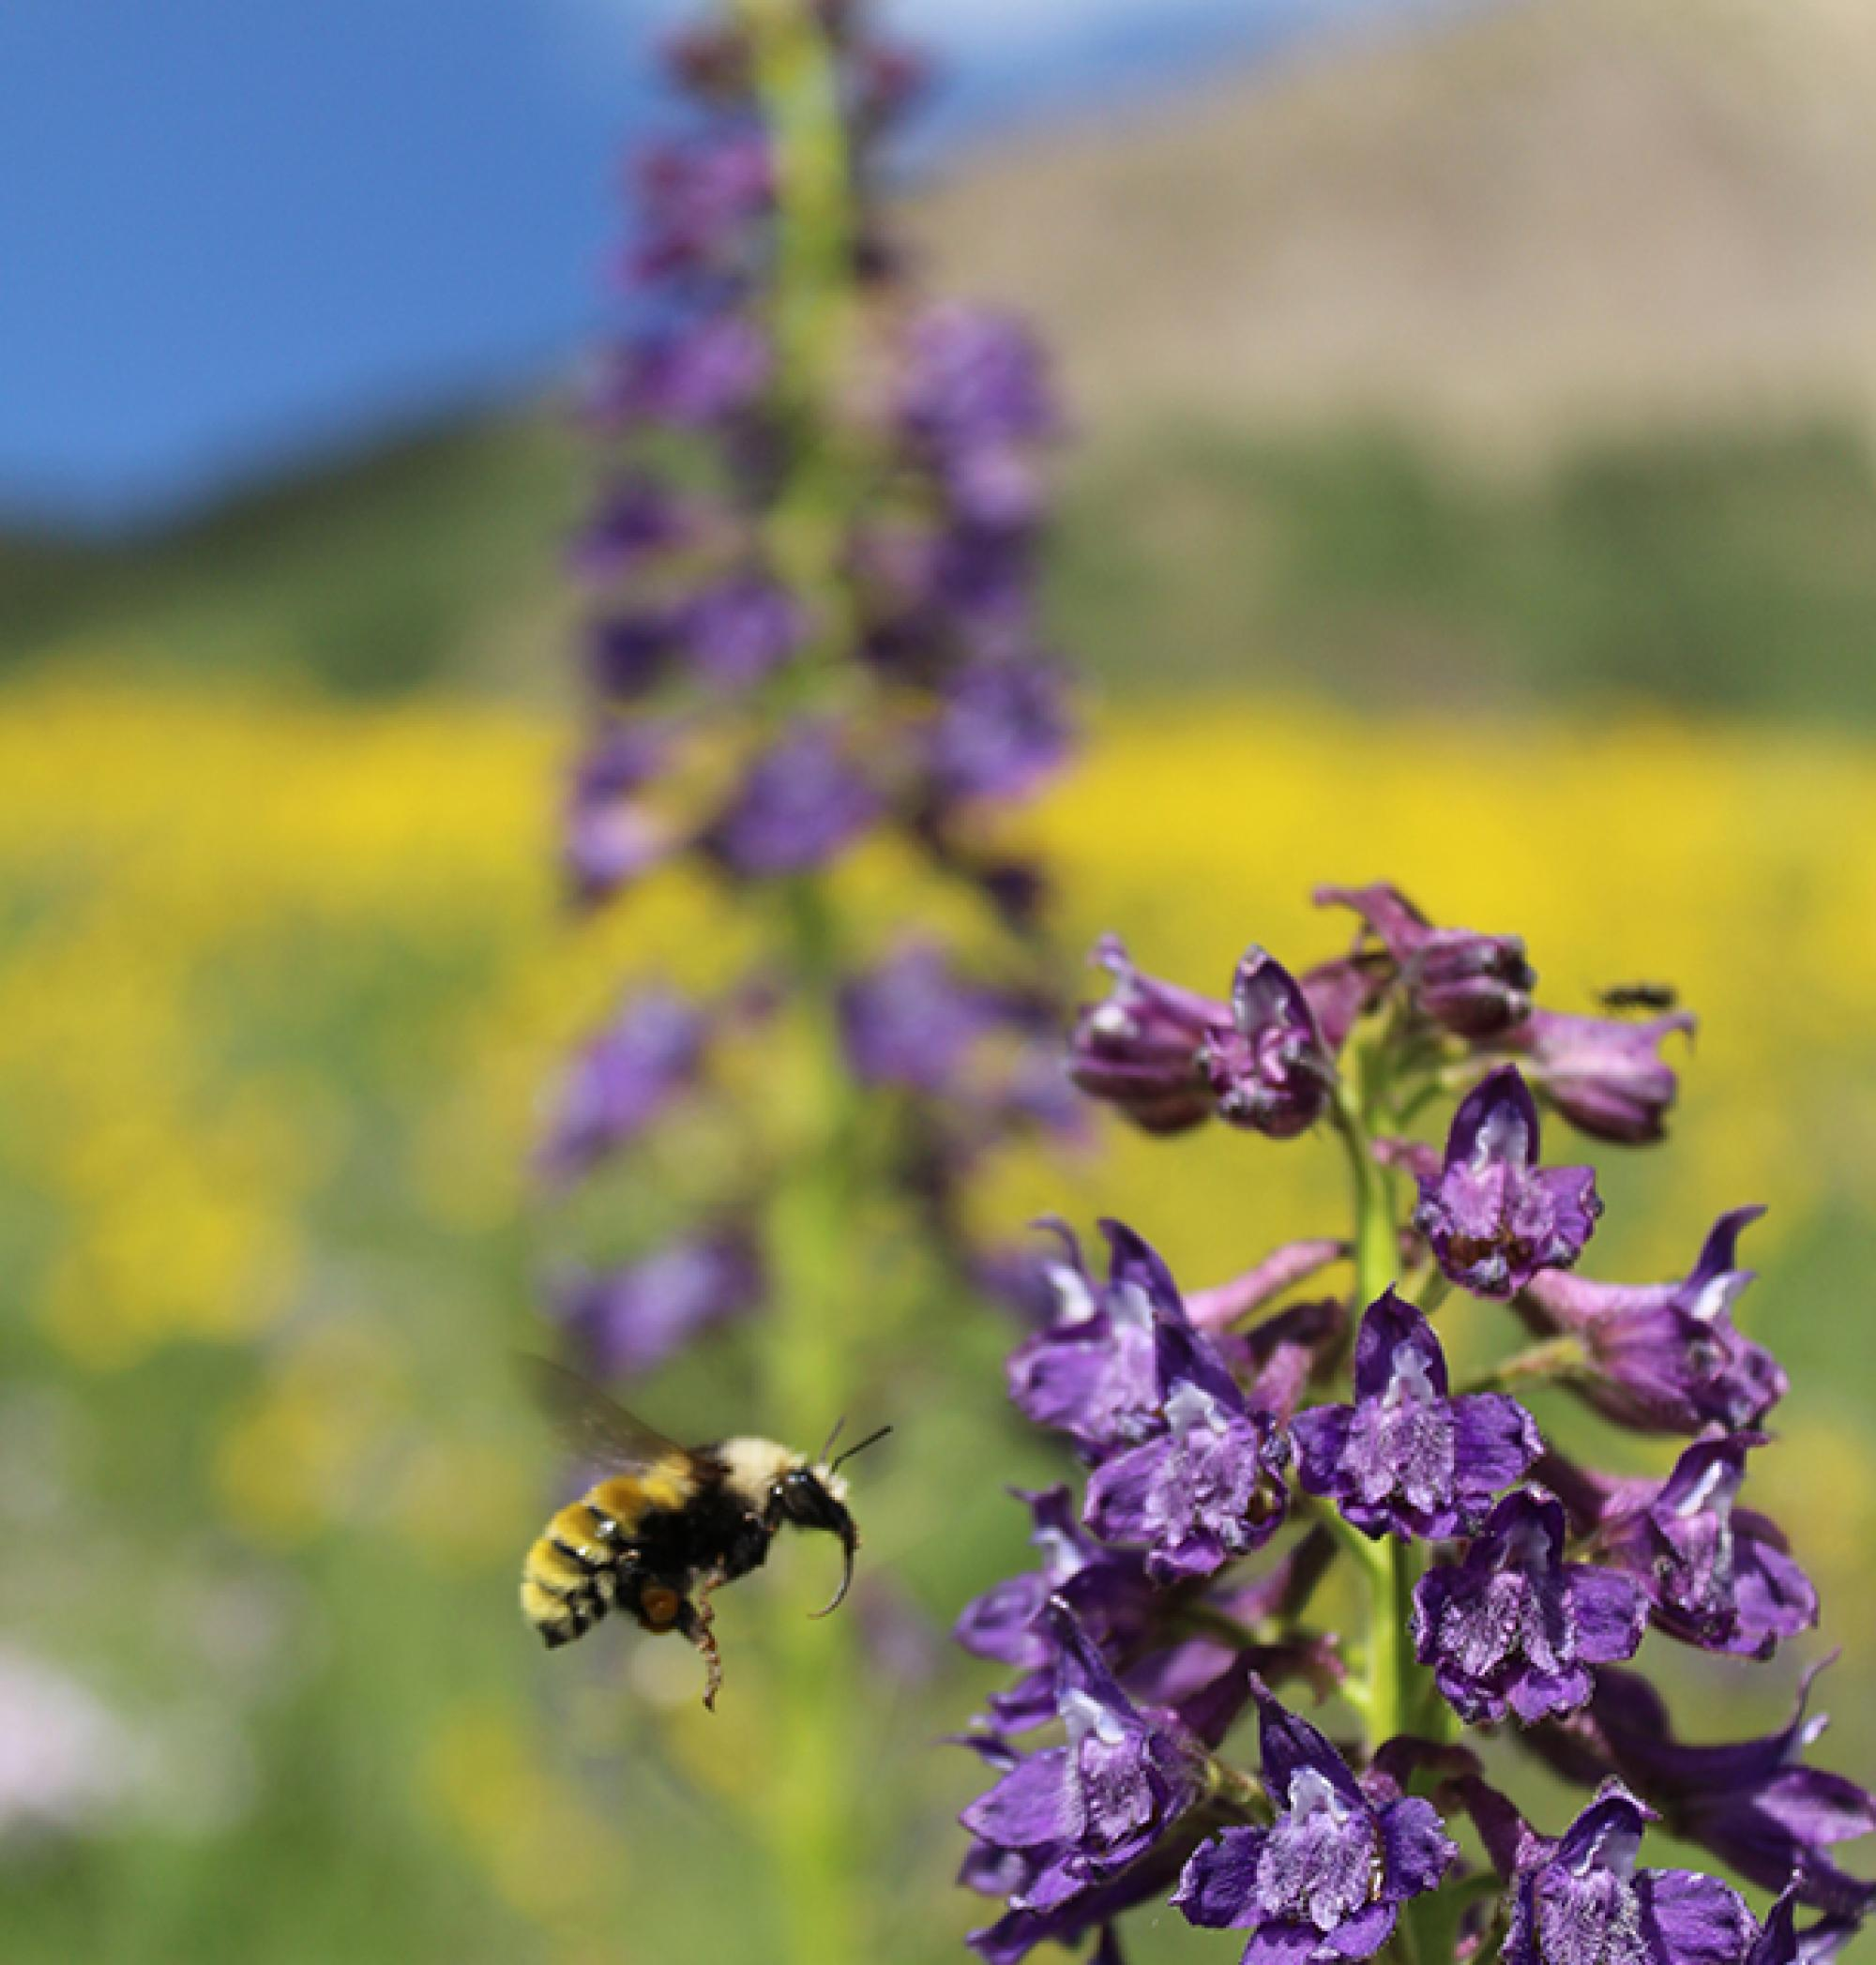 Shifts in flowering schedule caused by a changing climate can affect the relationships between plants and their pollinators.